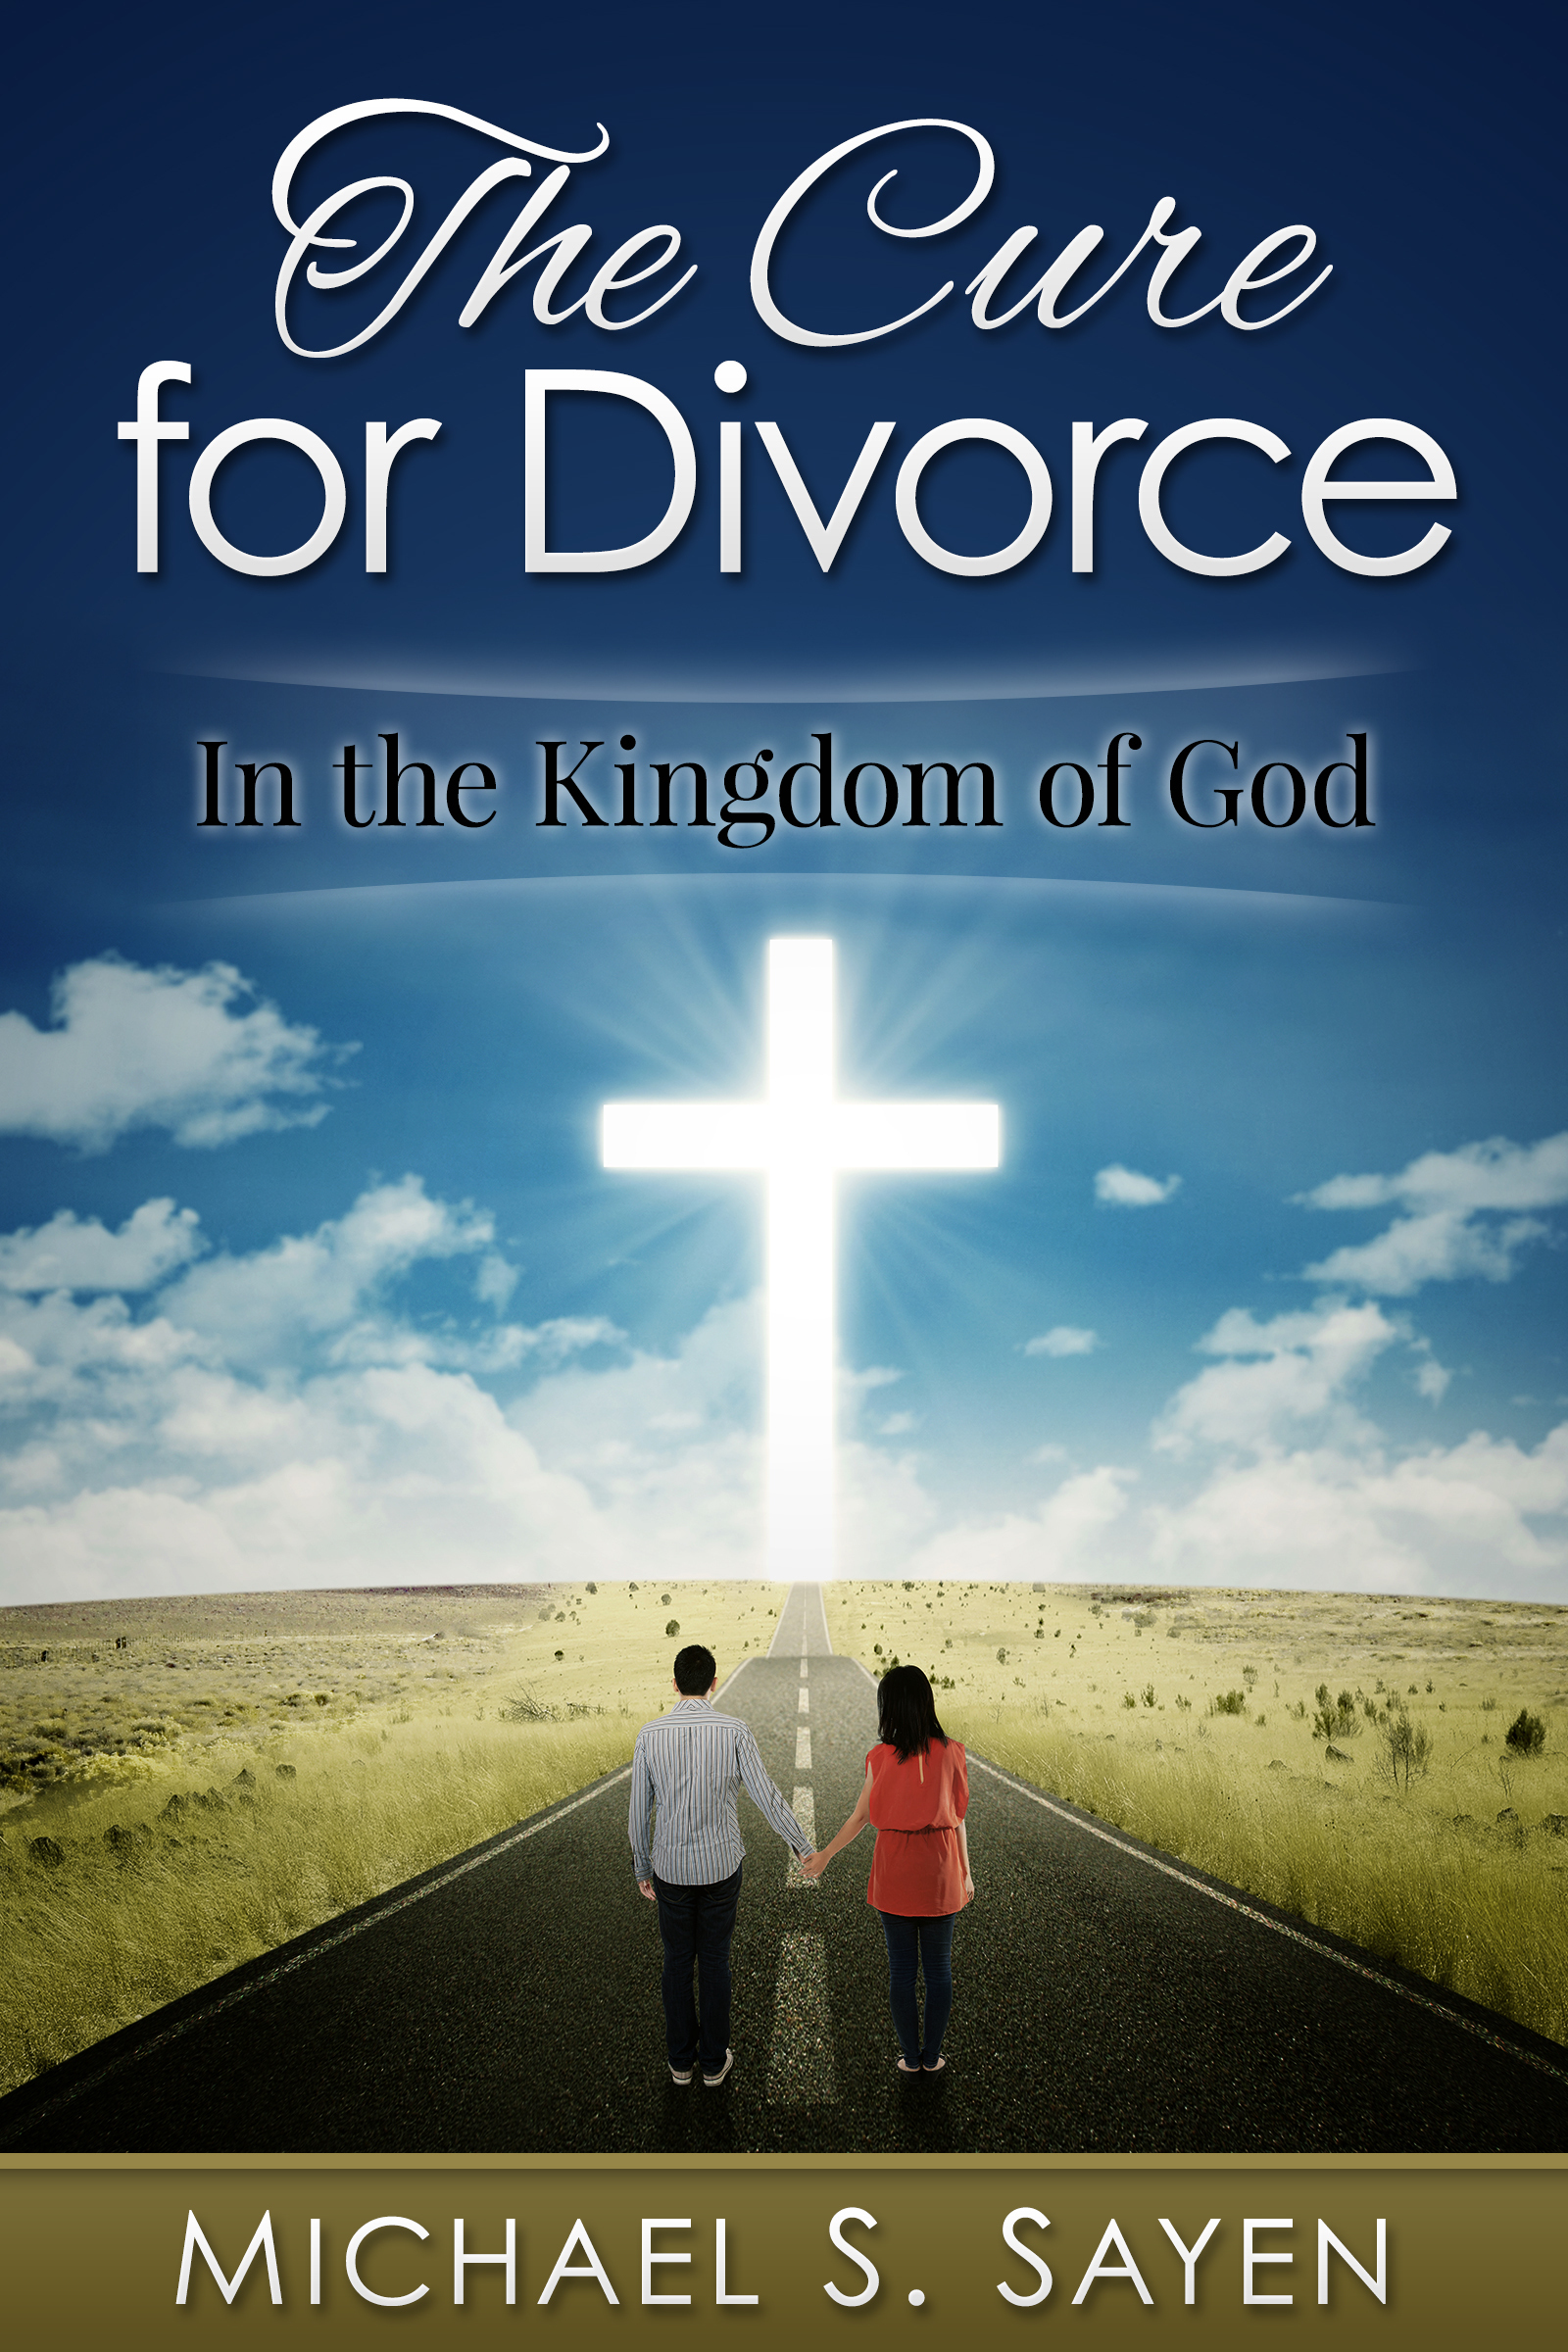 The Cure for Divorce (In the Kingdom of God): Second edition  by  Michael S. Sayen